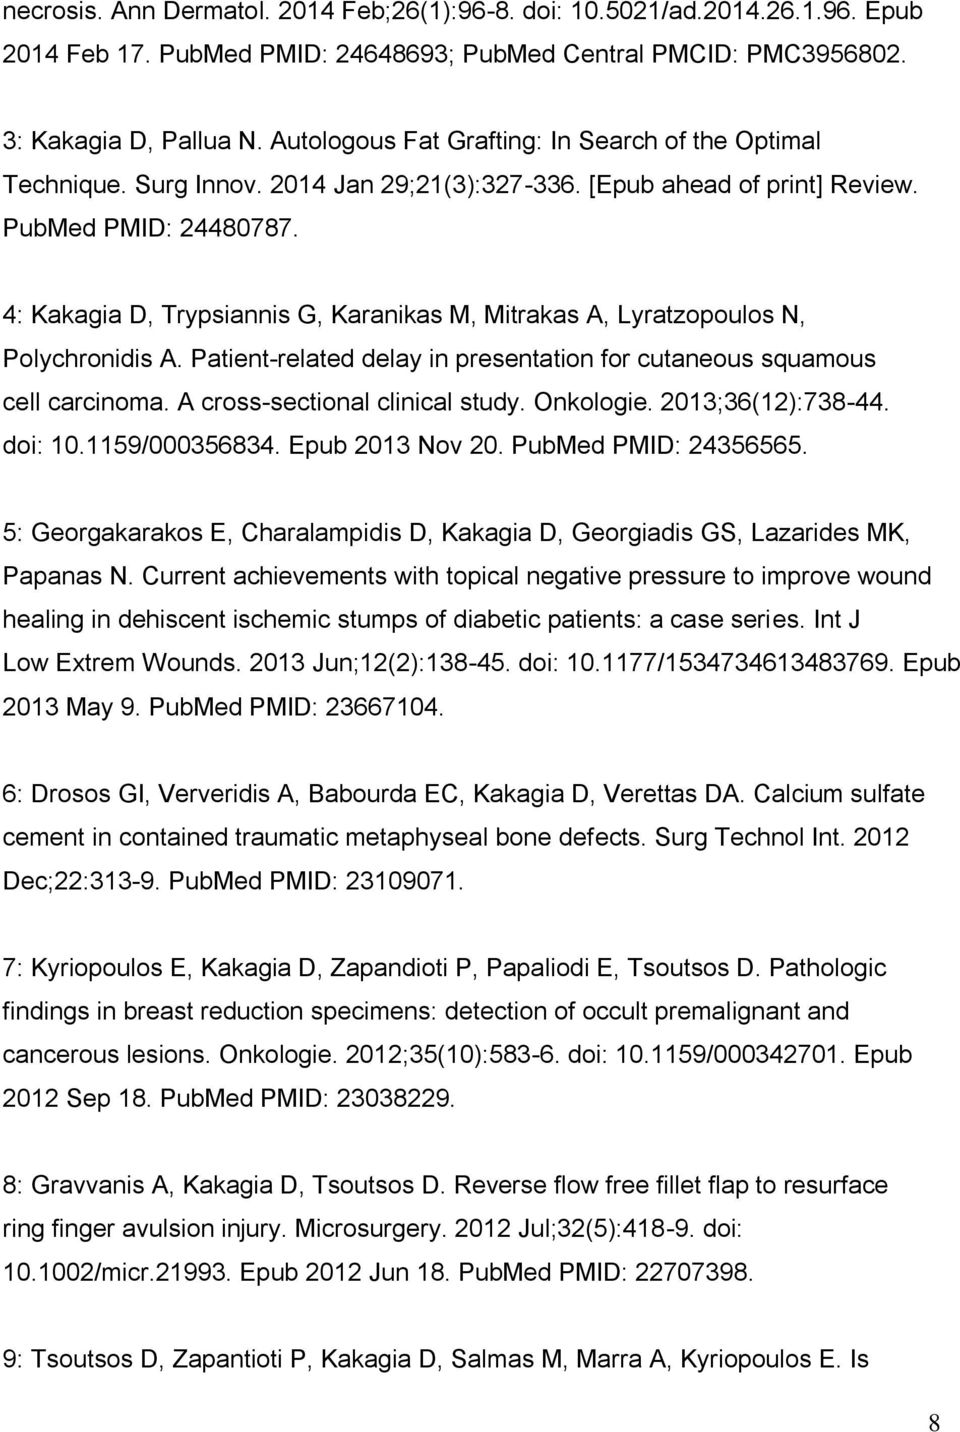 4: Kakagia D, Trypsiannis G, Karanikas M, Mitrakas A, Lyratzopoulos N, Polychronidis A. Patient-related delay in presentation for cutaneous squamous cell carcinoma. A cross-sectional clinical study.